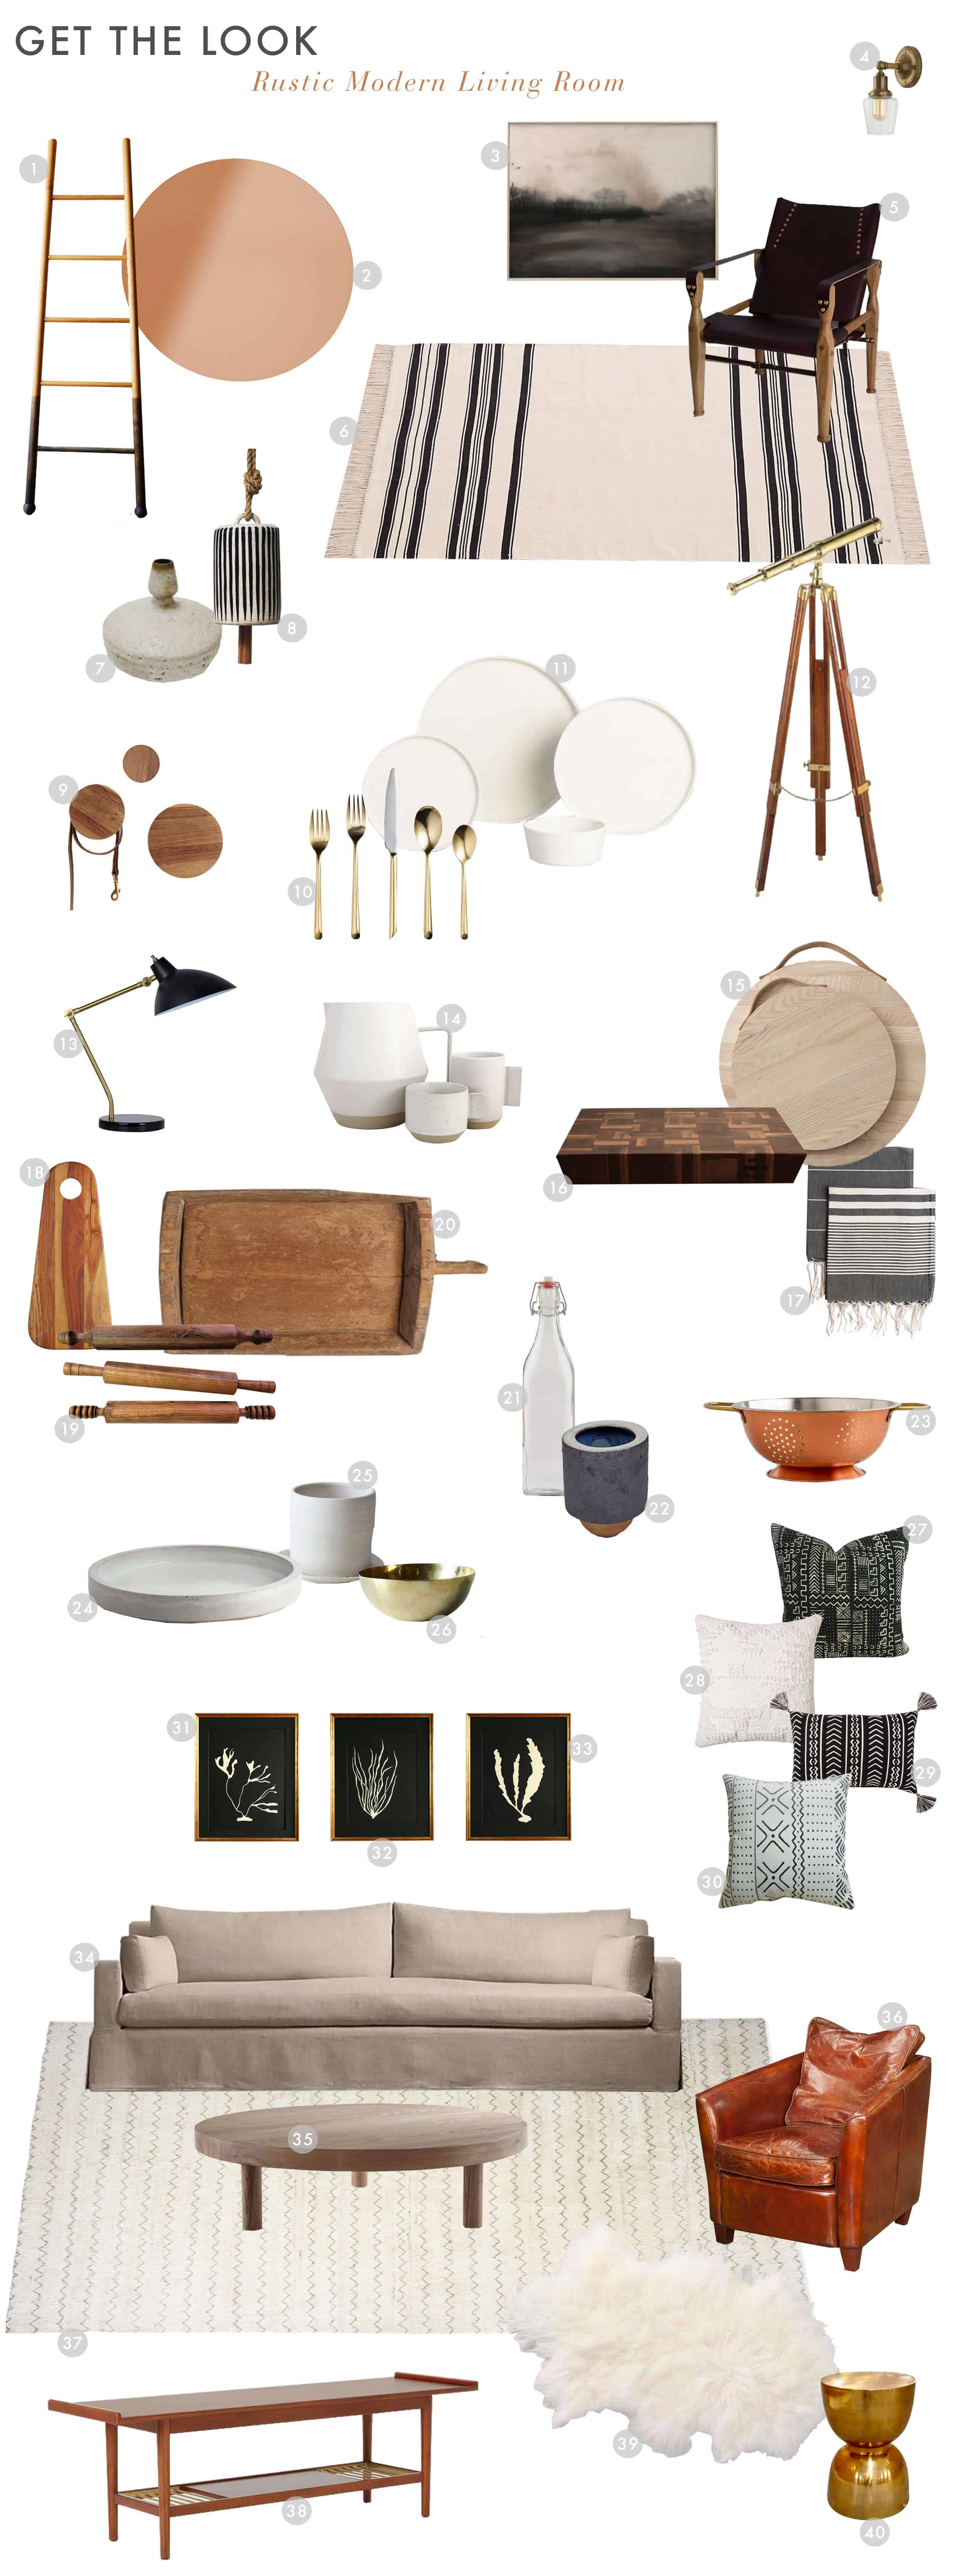 Emily Henderson_House Tour_Tomer_Styled_Book_Modern_Rustic_Get the Look